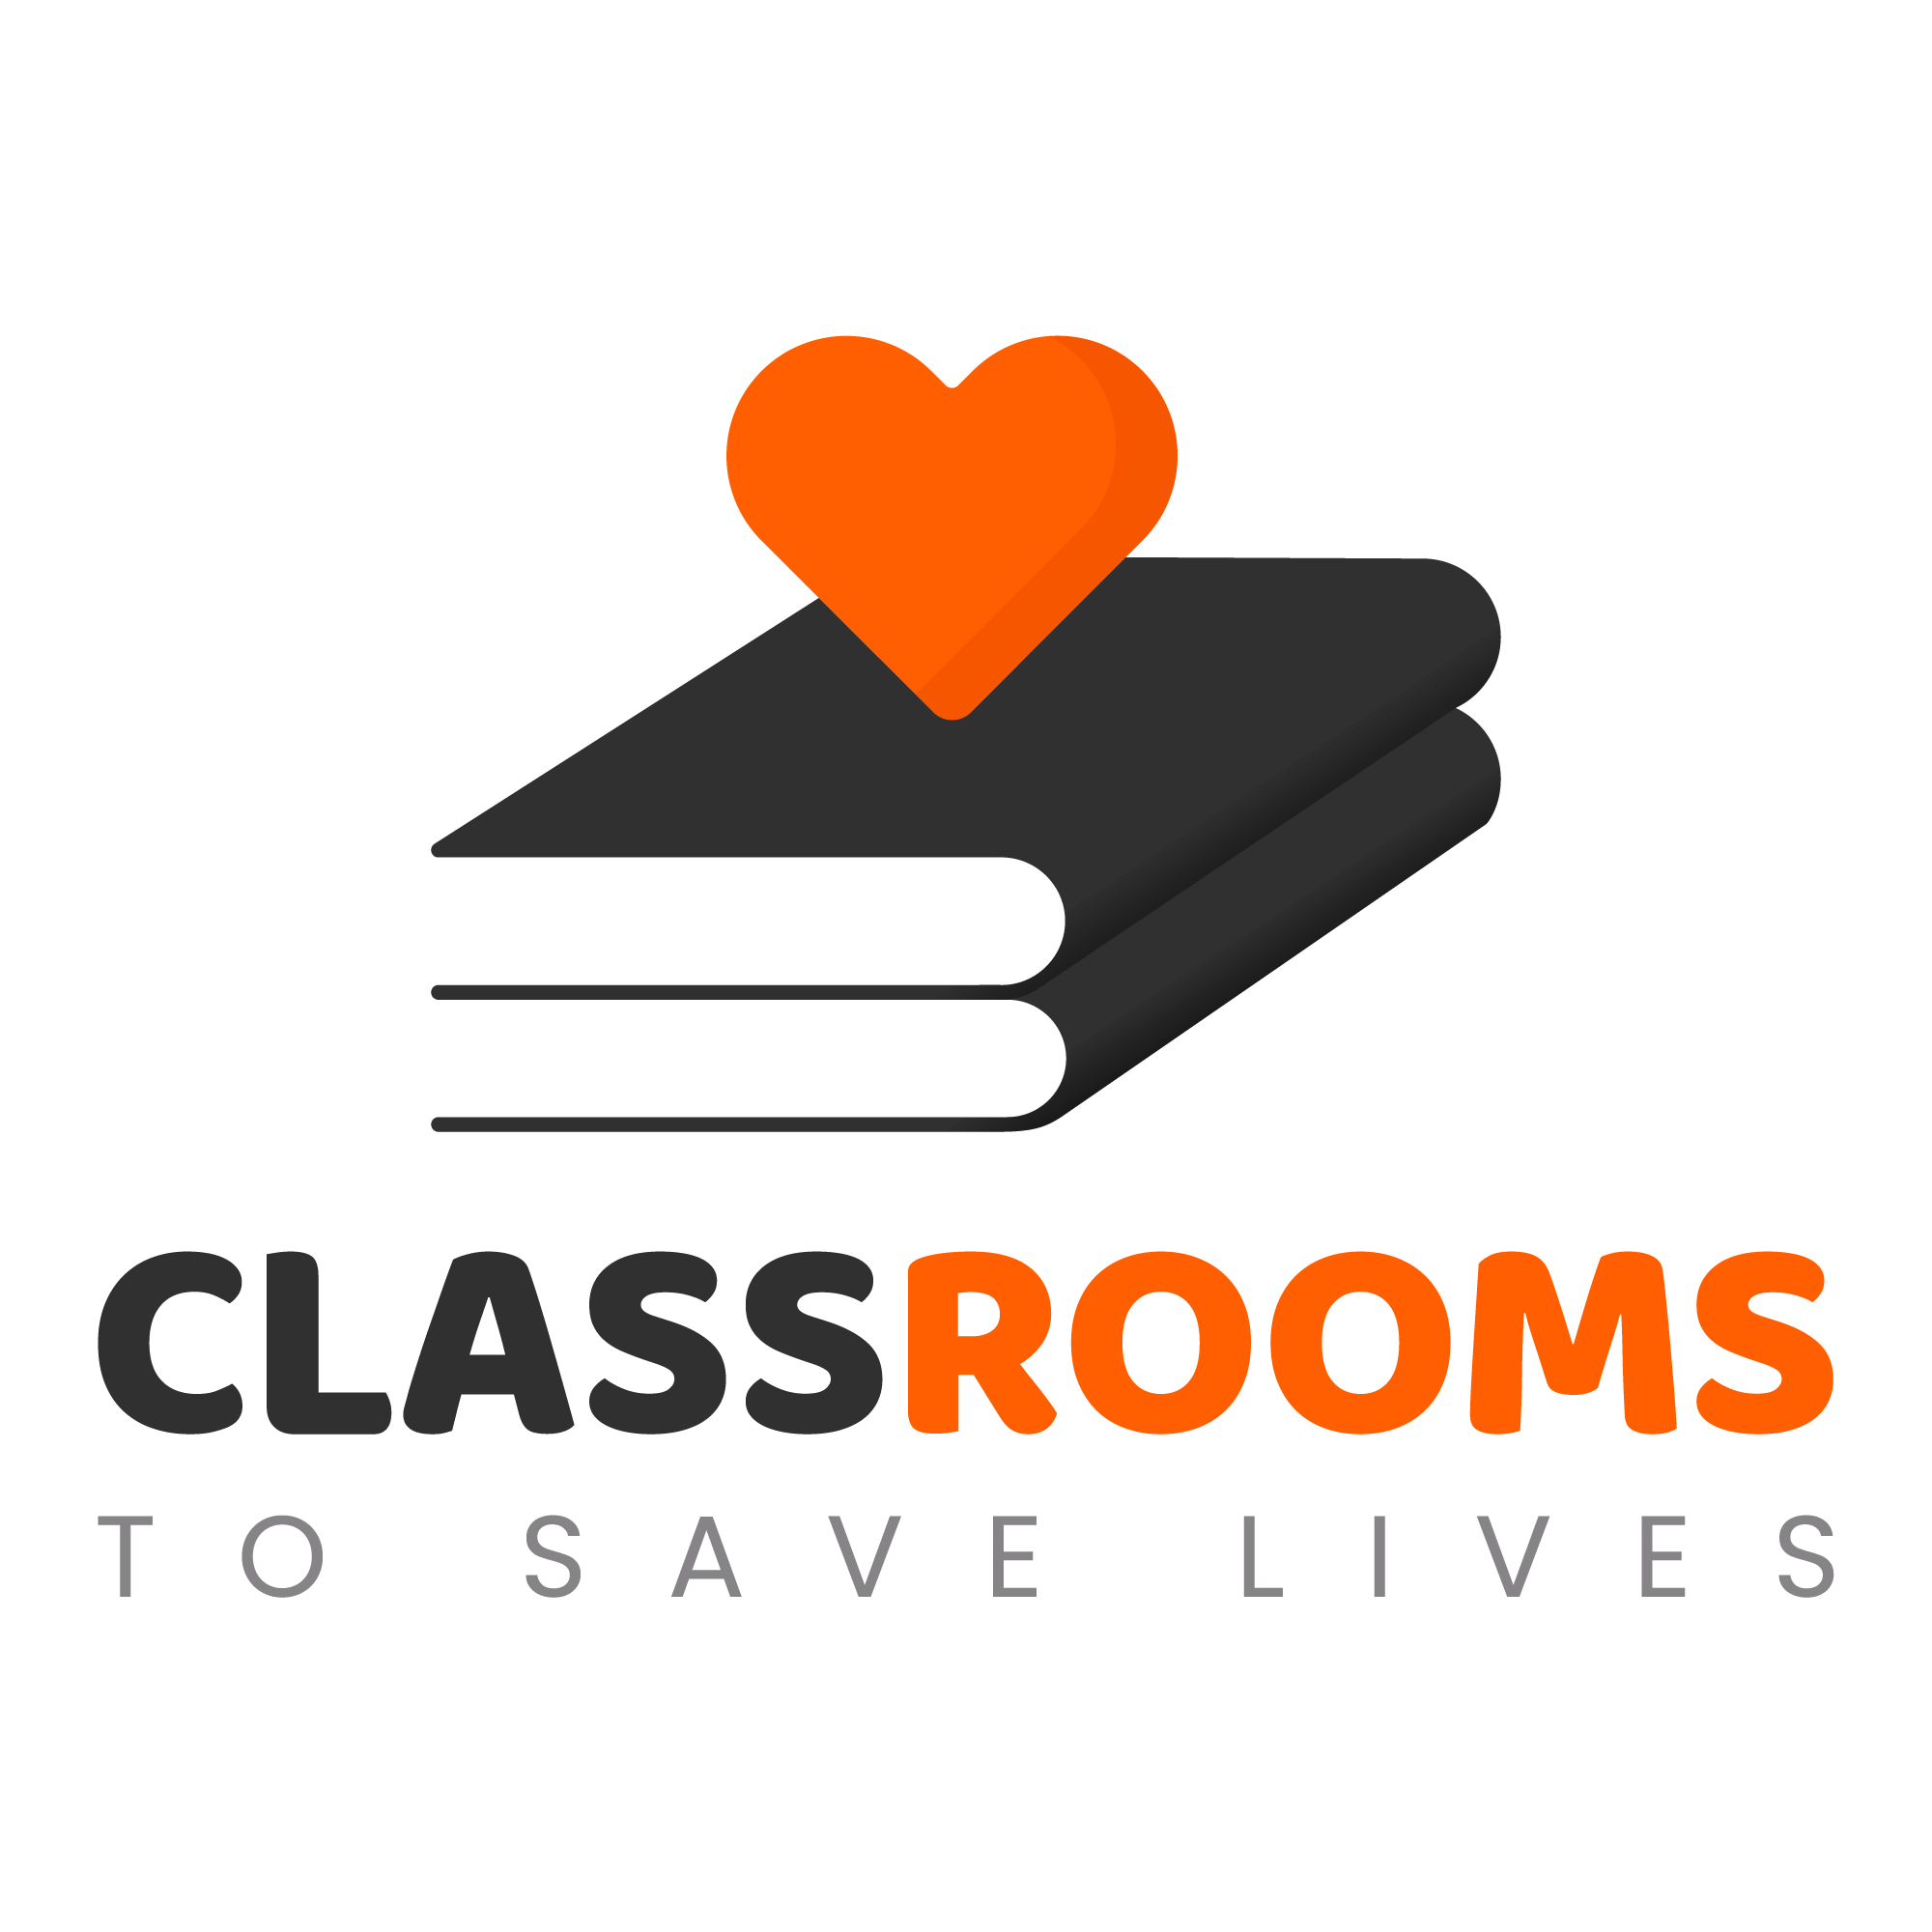 Classrooms to save lives logo